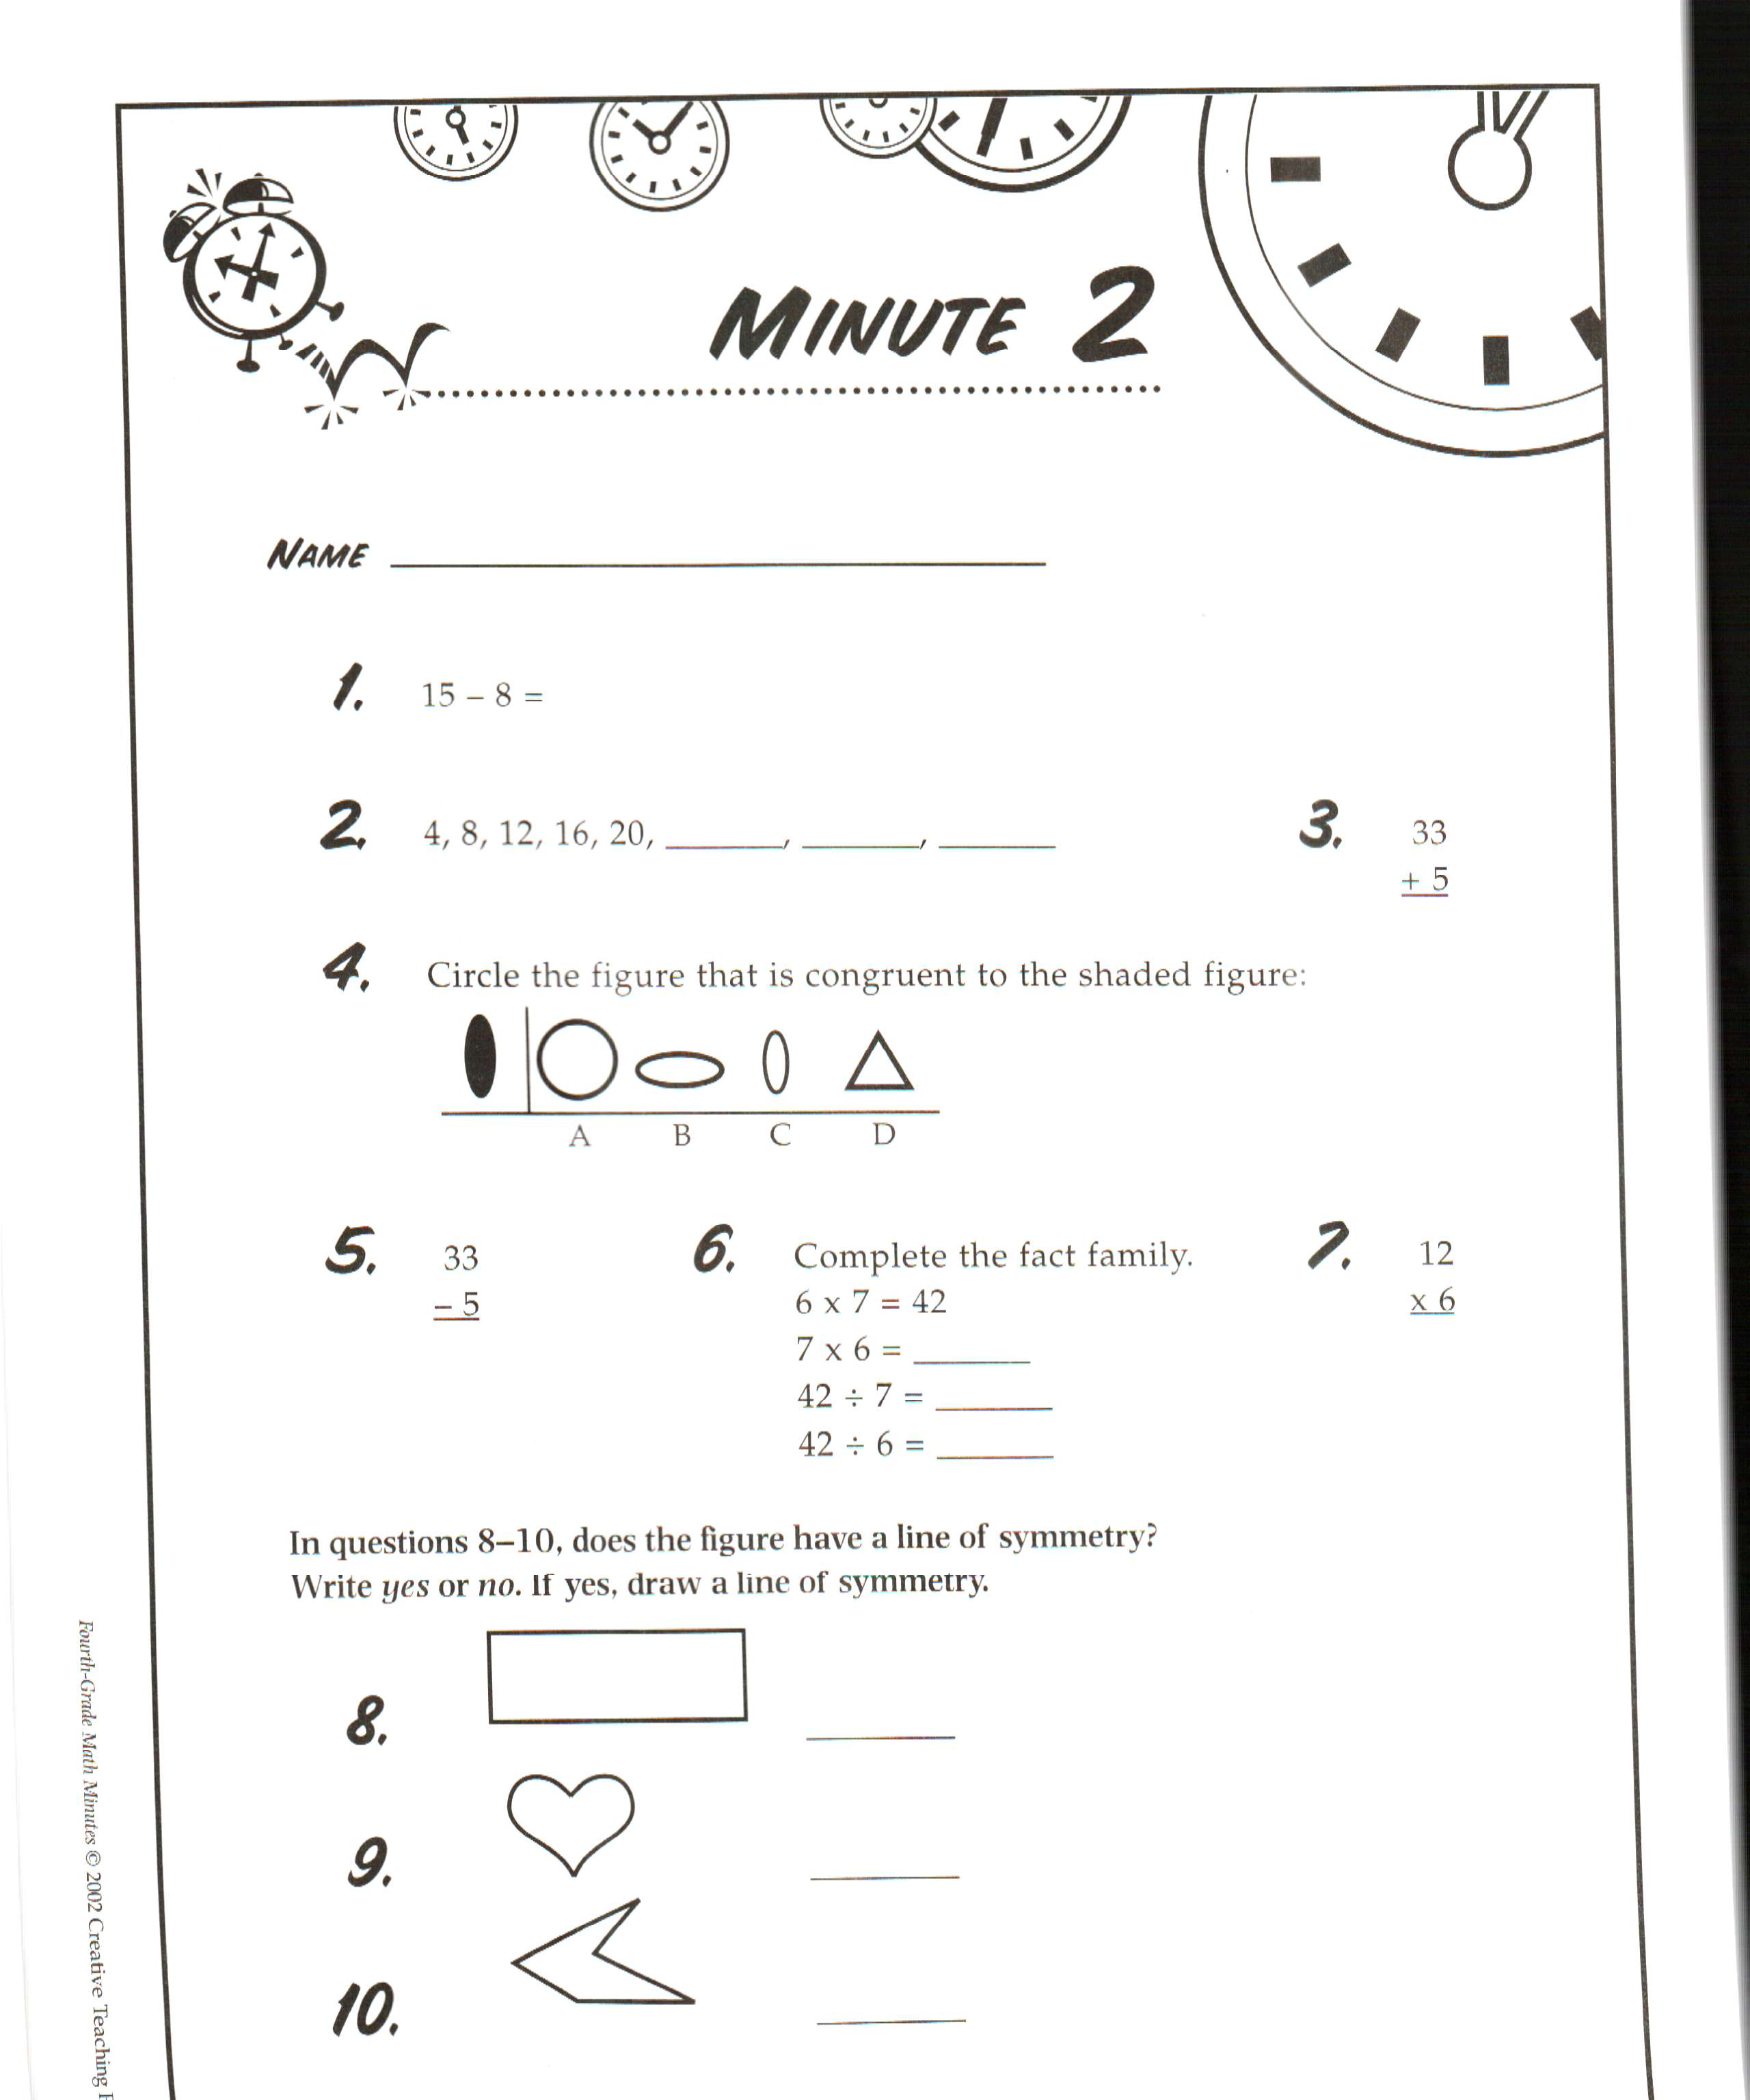 worksheet One Minute Math Worksheets math minute worksheet free worksheets library download and print worksheet